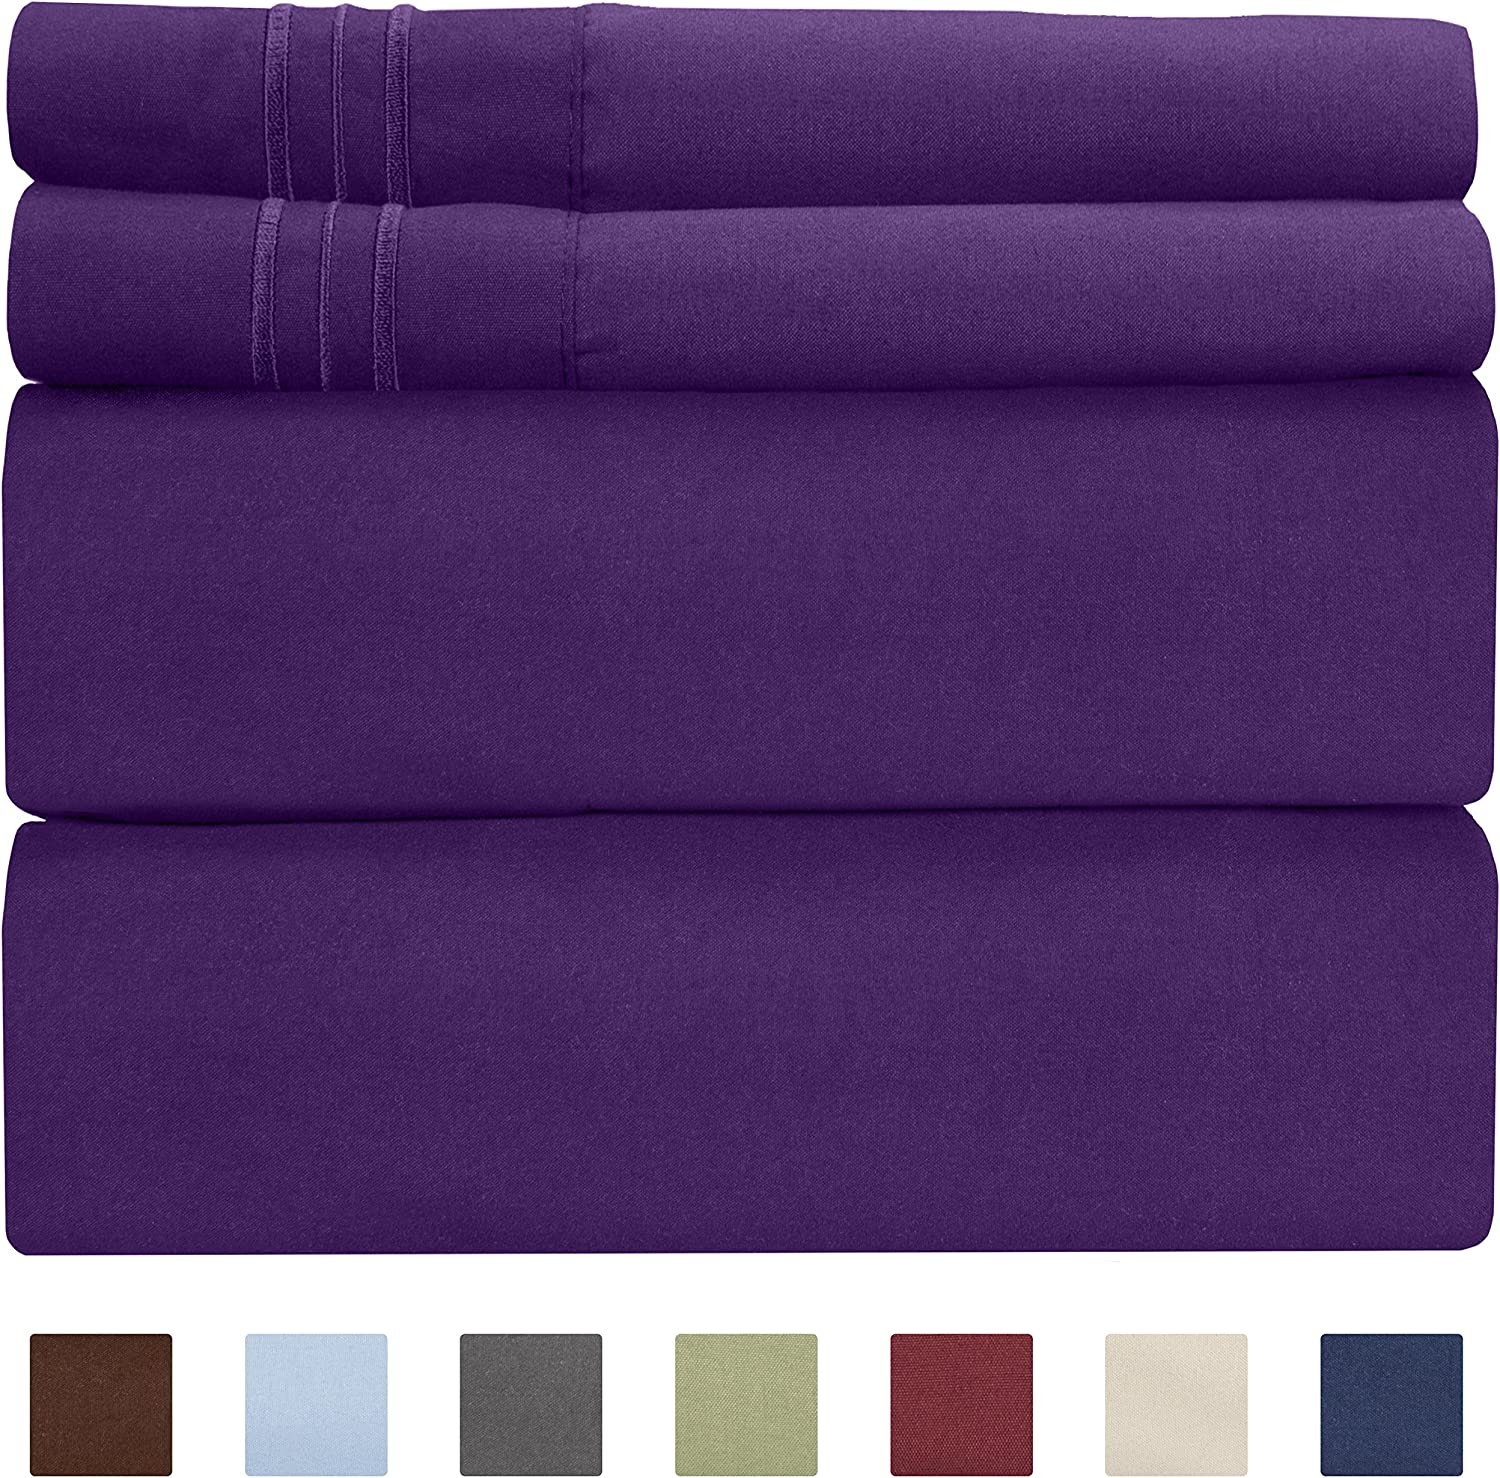 Full Size Sheet Set - 4 Piece Set - Hotel Luxury Bed Sheets - Extra Soft - Deep Pockets - Easy Fit - Breathable & Cooling - Wrinkle Free - Comfy – Purple Plum Bed Sheets - Fulls Sheets – 4 PC